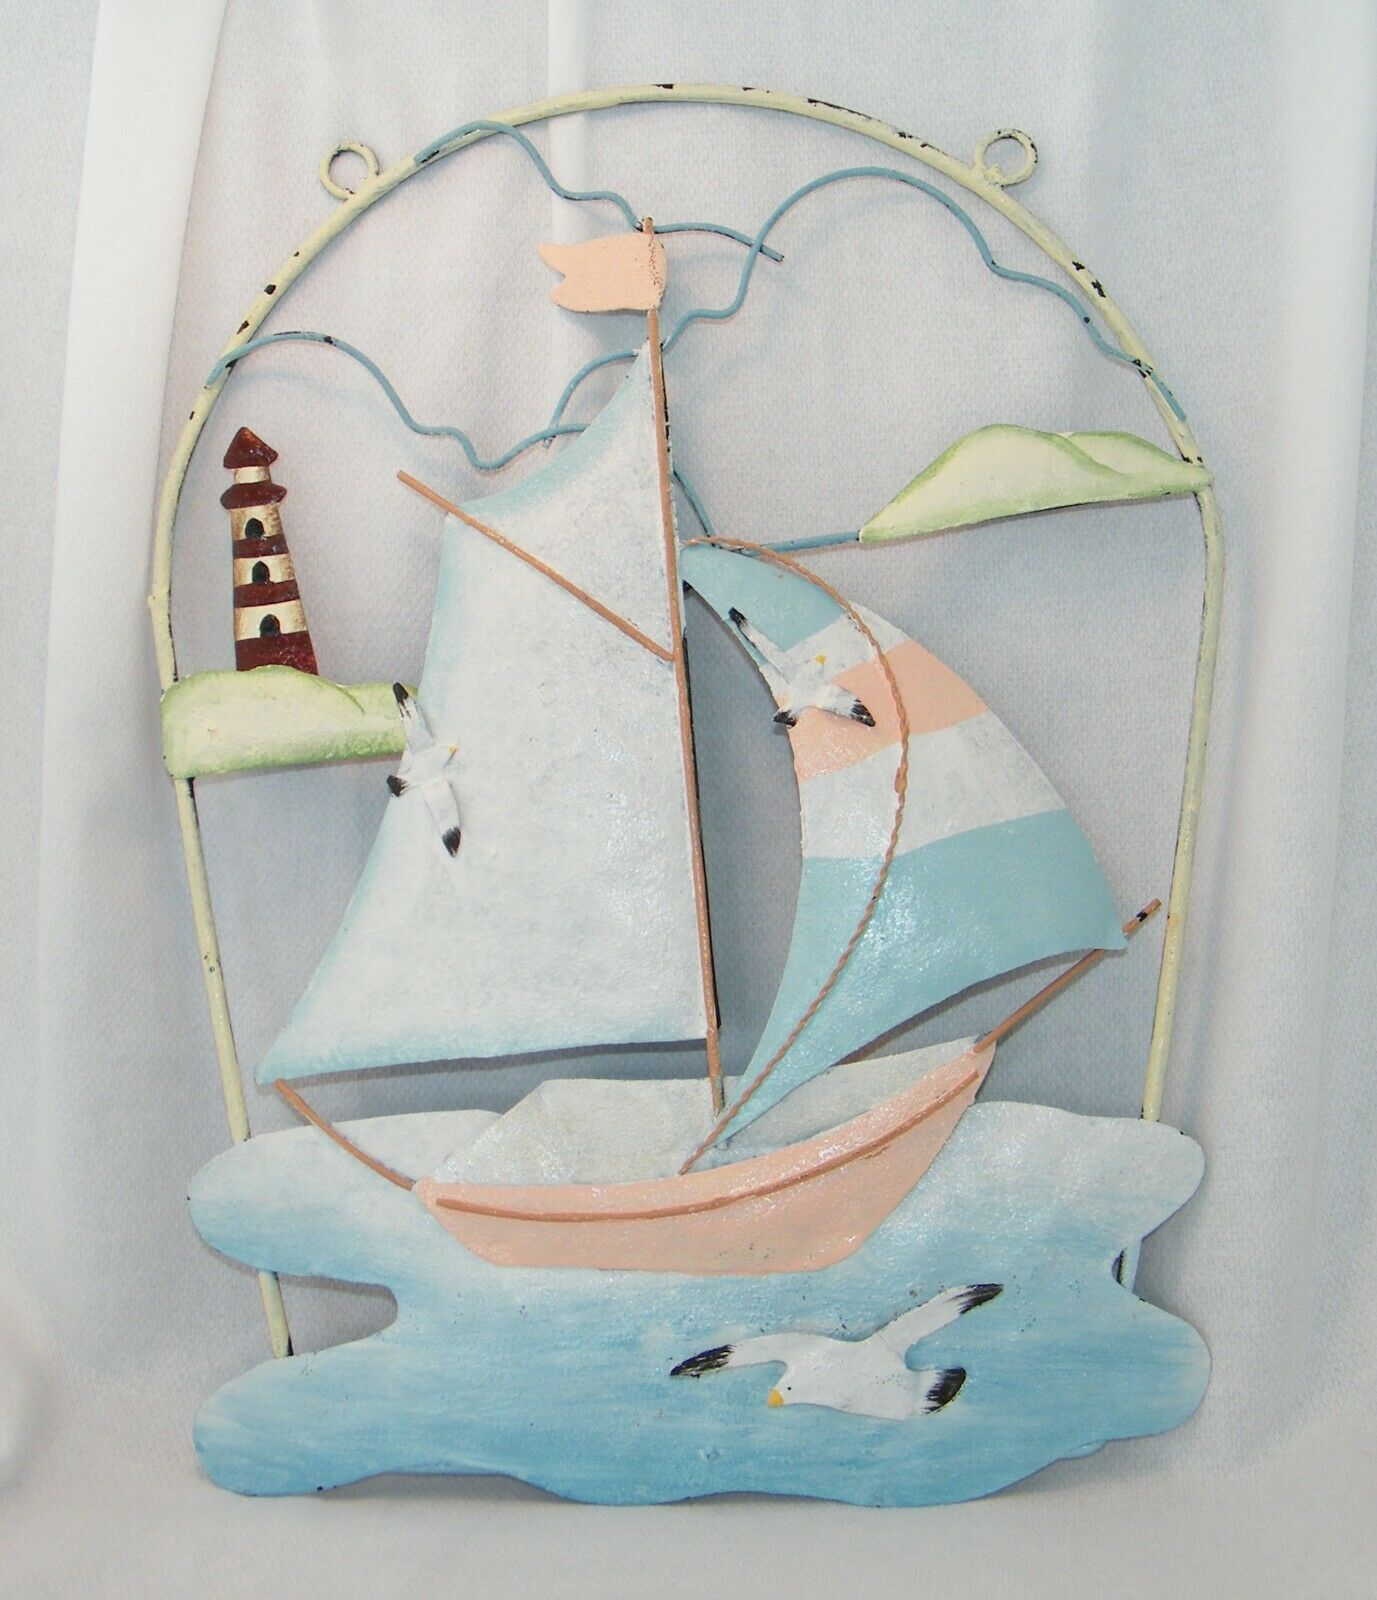 Metal WallArt Decor Sail Boat Lighthouse Seagull Coastal Beach Tropical Nautical